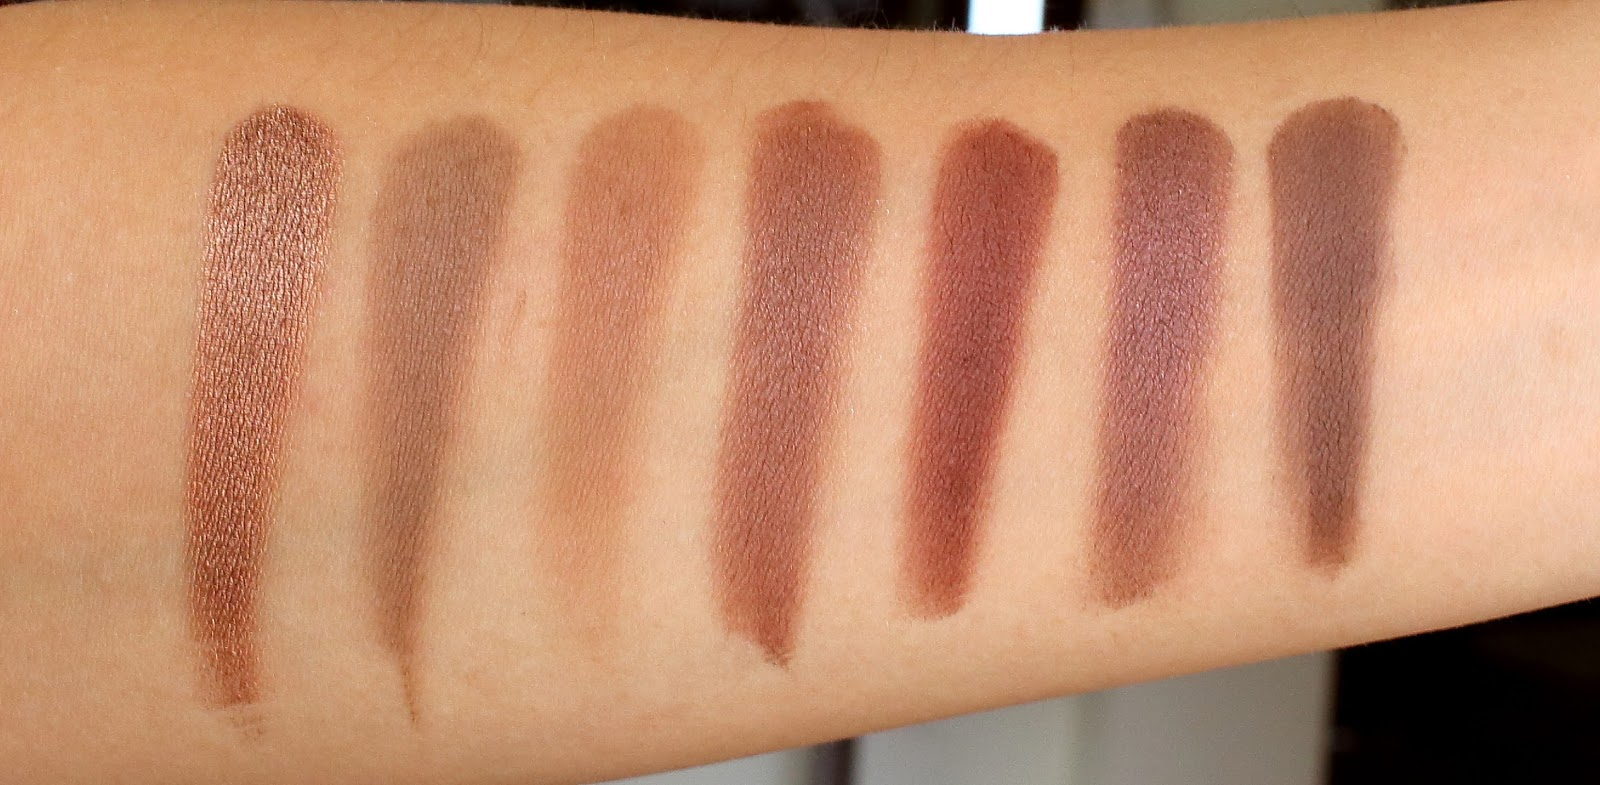 Morphe 35k eyeshadow palette review beauty in bold - Second Row